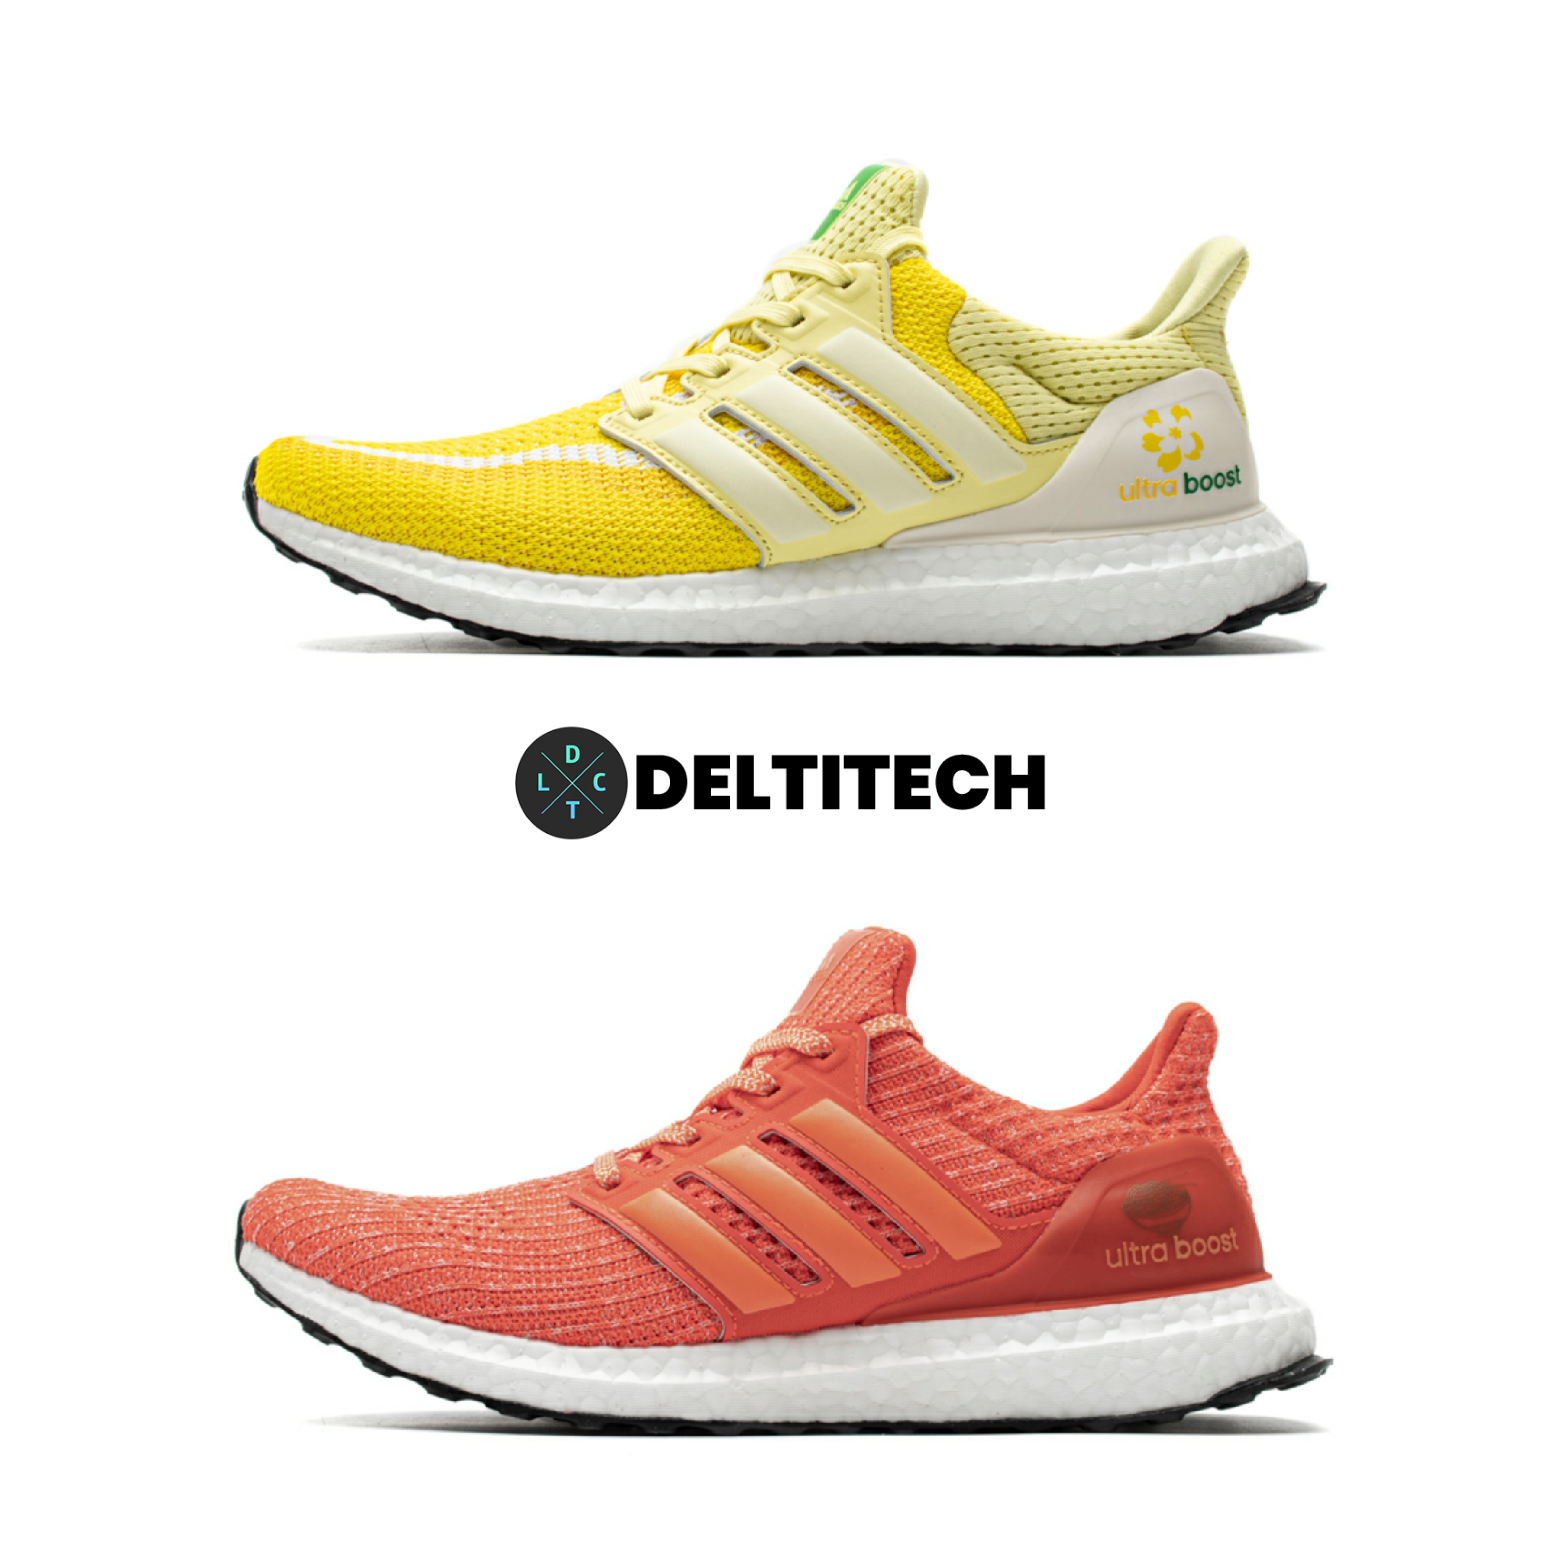 Adidas Ultra Boost 4 0 New Women S Colorways Available Online Now Deltitechbrands Com Deltitech Adidas Ultraboost Ultraboosts In 2020 Adidas Rare Sneakers Running Shoes Nike